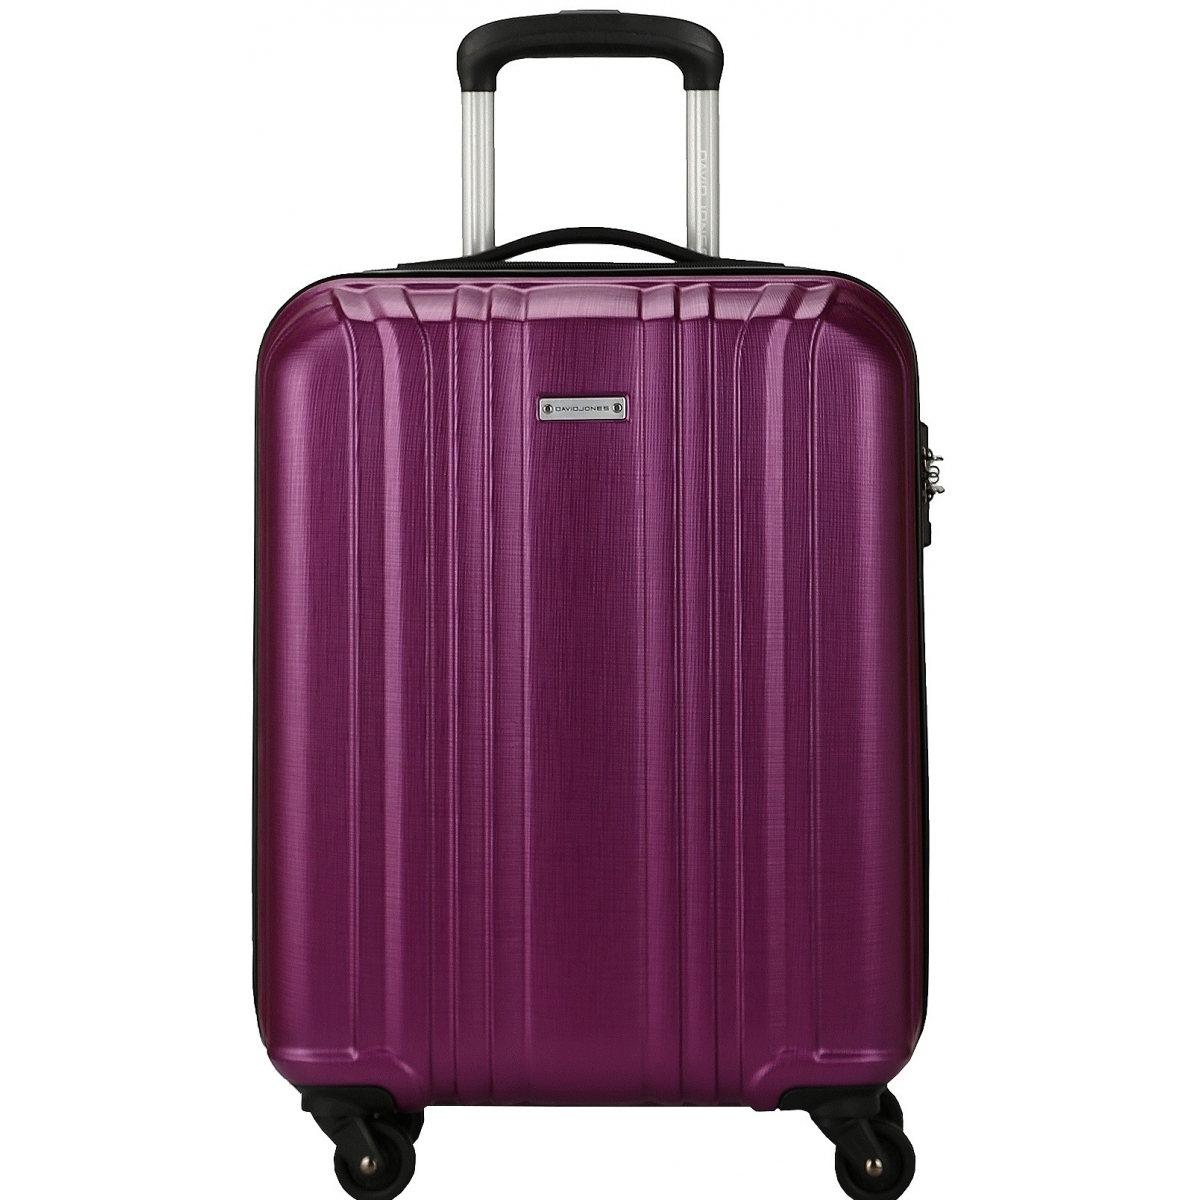 valise cabine rigide david jones 55cm ba10171p couleur principale purple valise pas cher. Black Bedroom Furniture Sets. Home Design Ideas